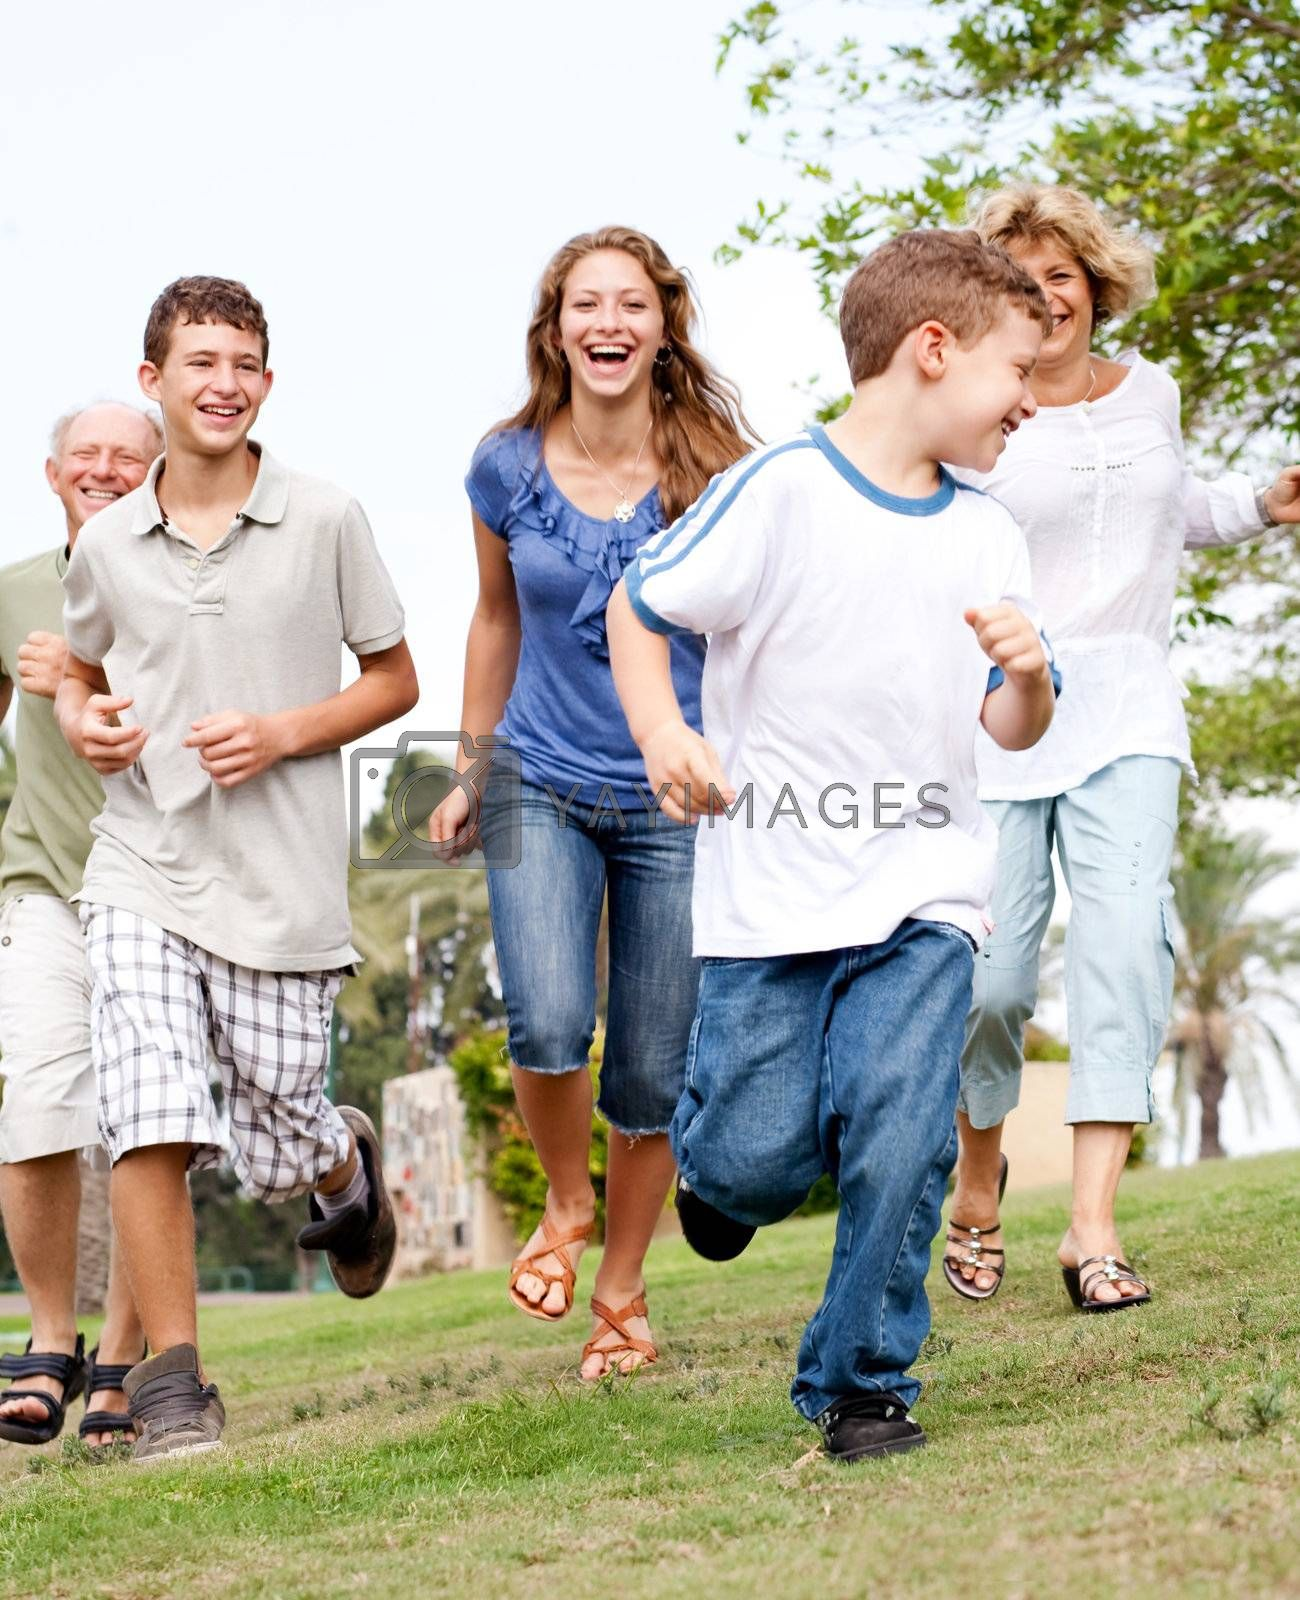 Happy young family chasing young kid in the park and having fun